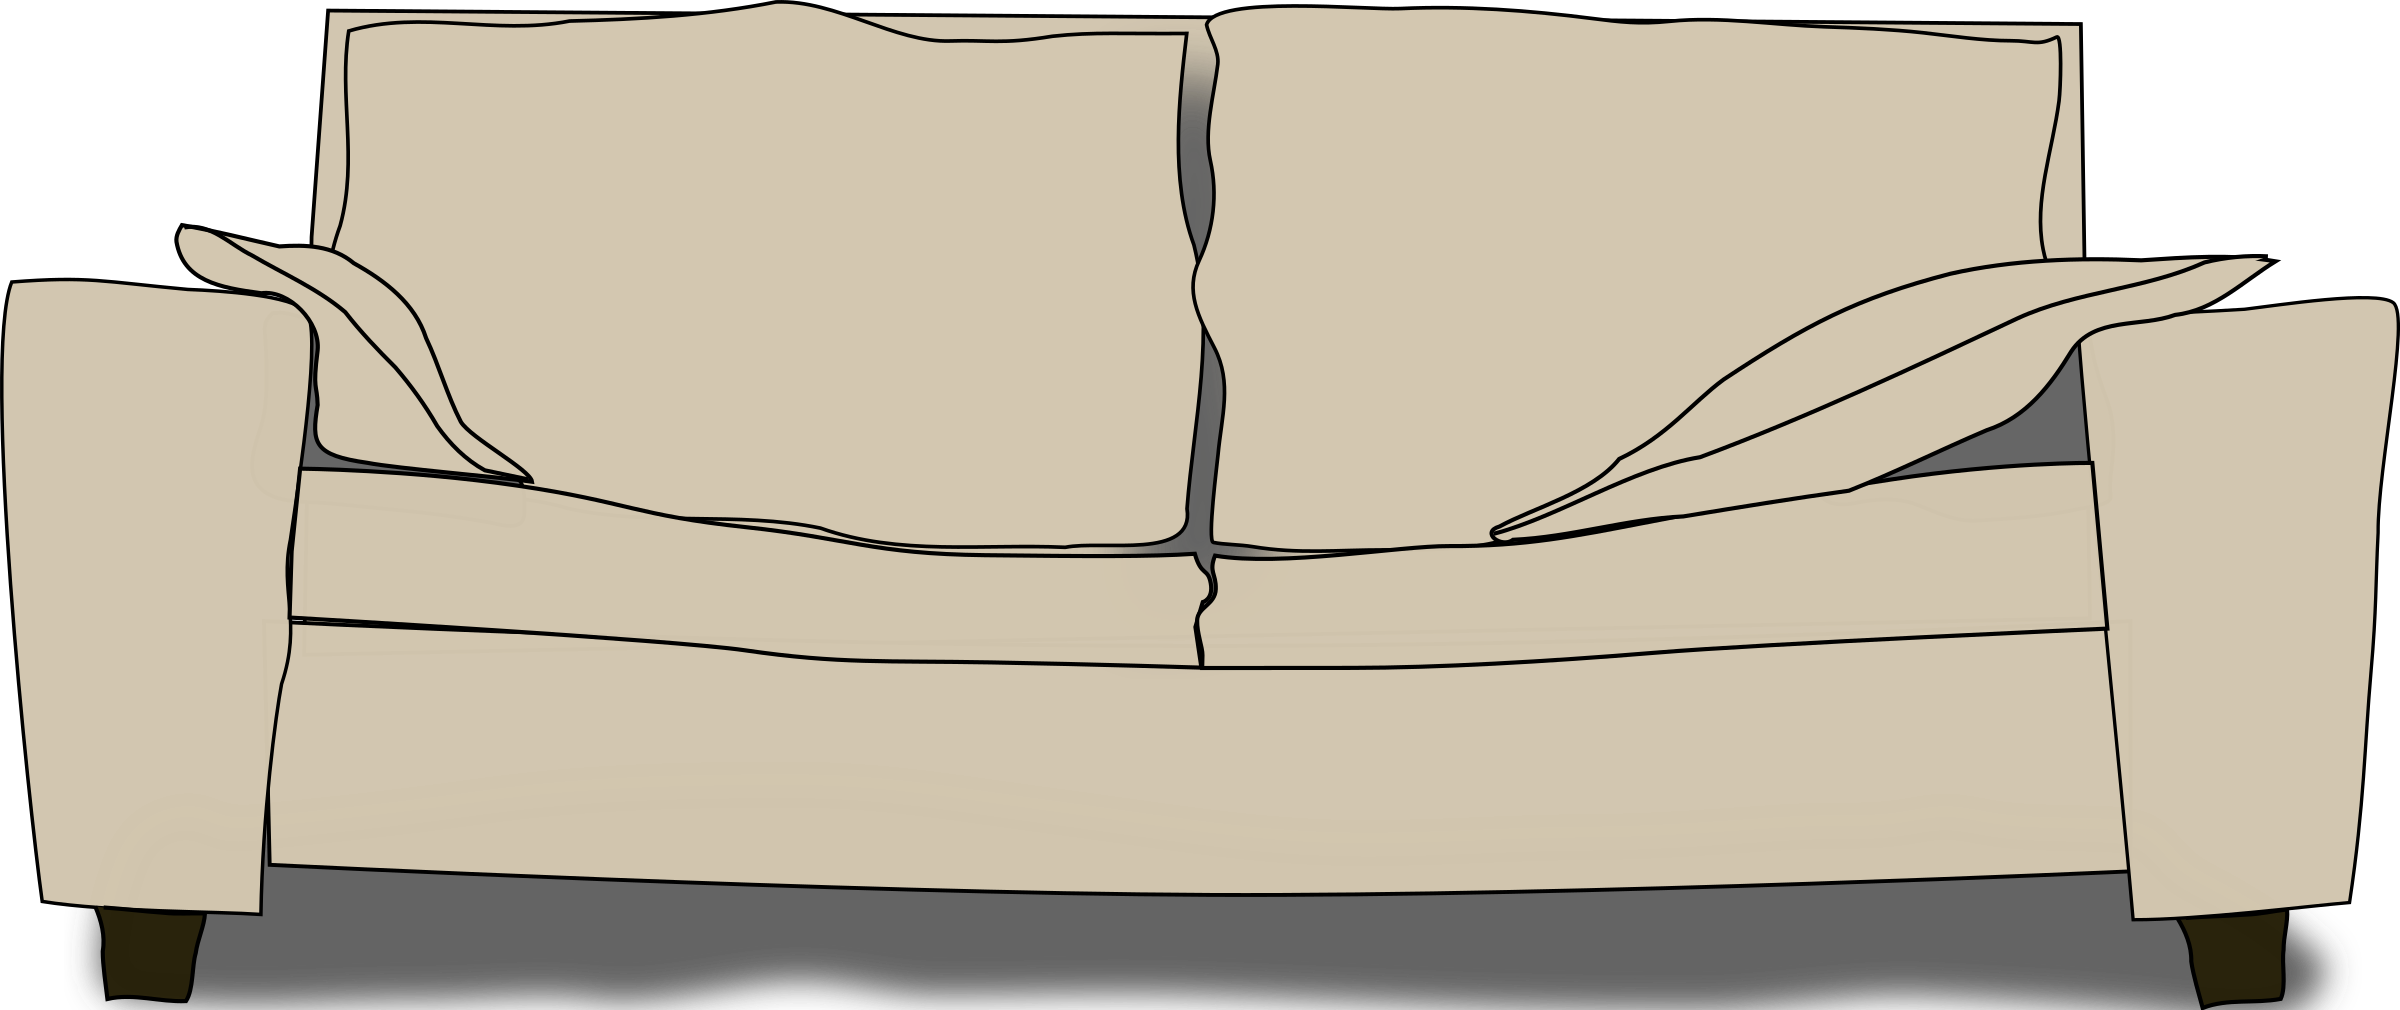 The big image png. Couch clipart old couch